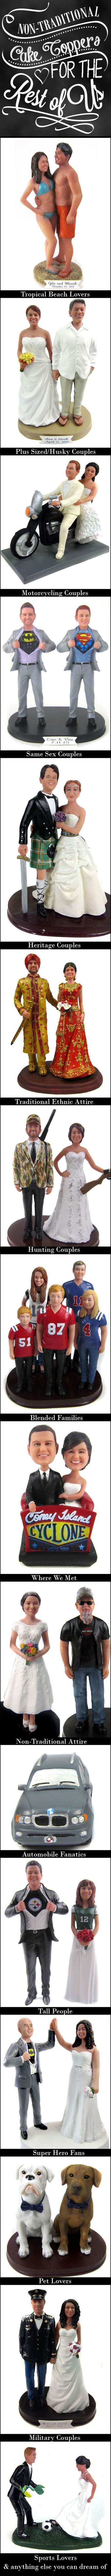 Let http://Bobblegr.am create a custom wedding cake topper that not only looks like you but reflects what makes your love special.